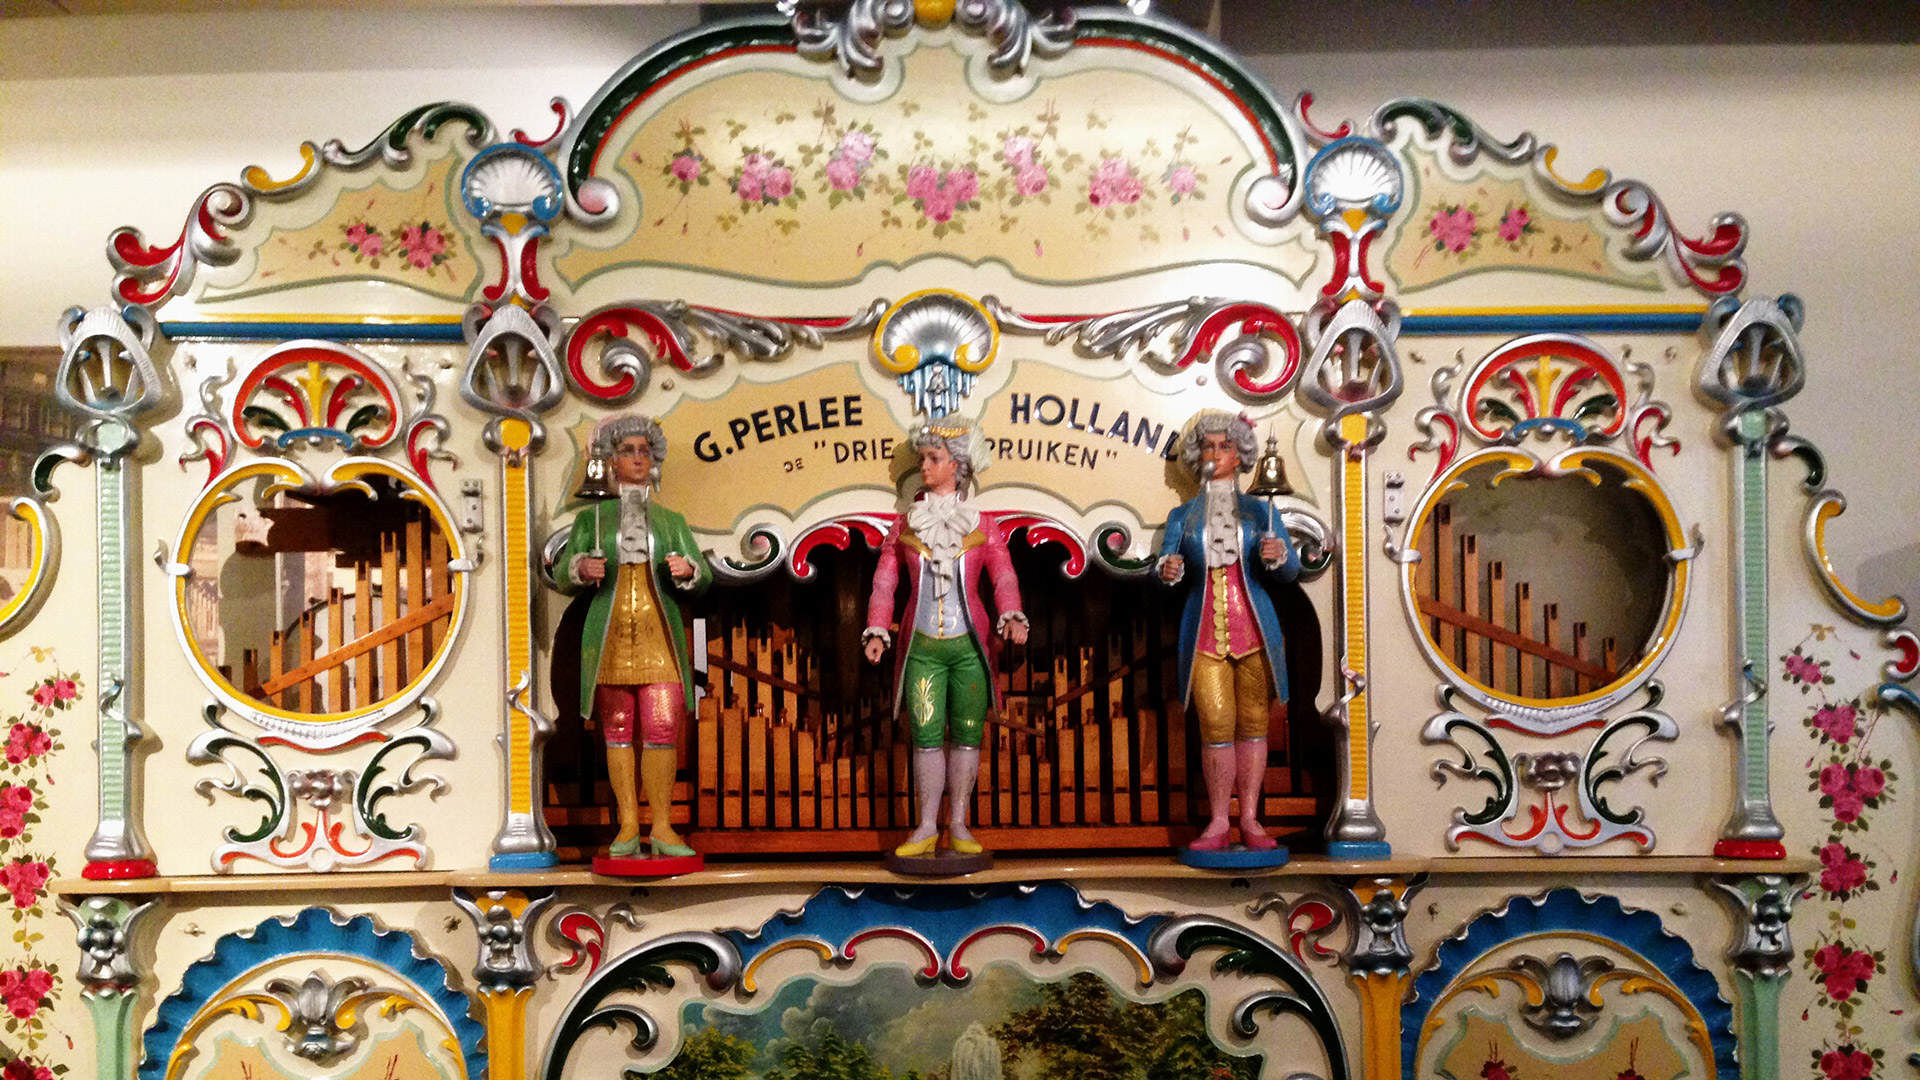 THE MOST CHEERFUL MUSEUM IN THE NETHERLANDS!